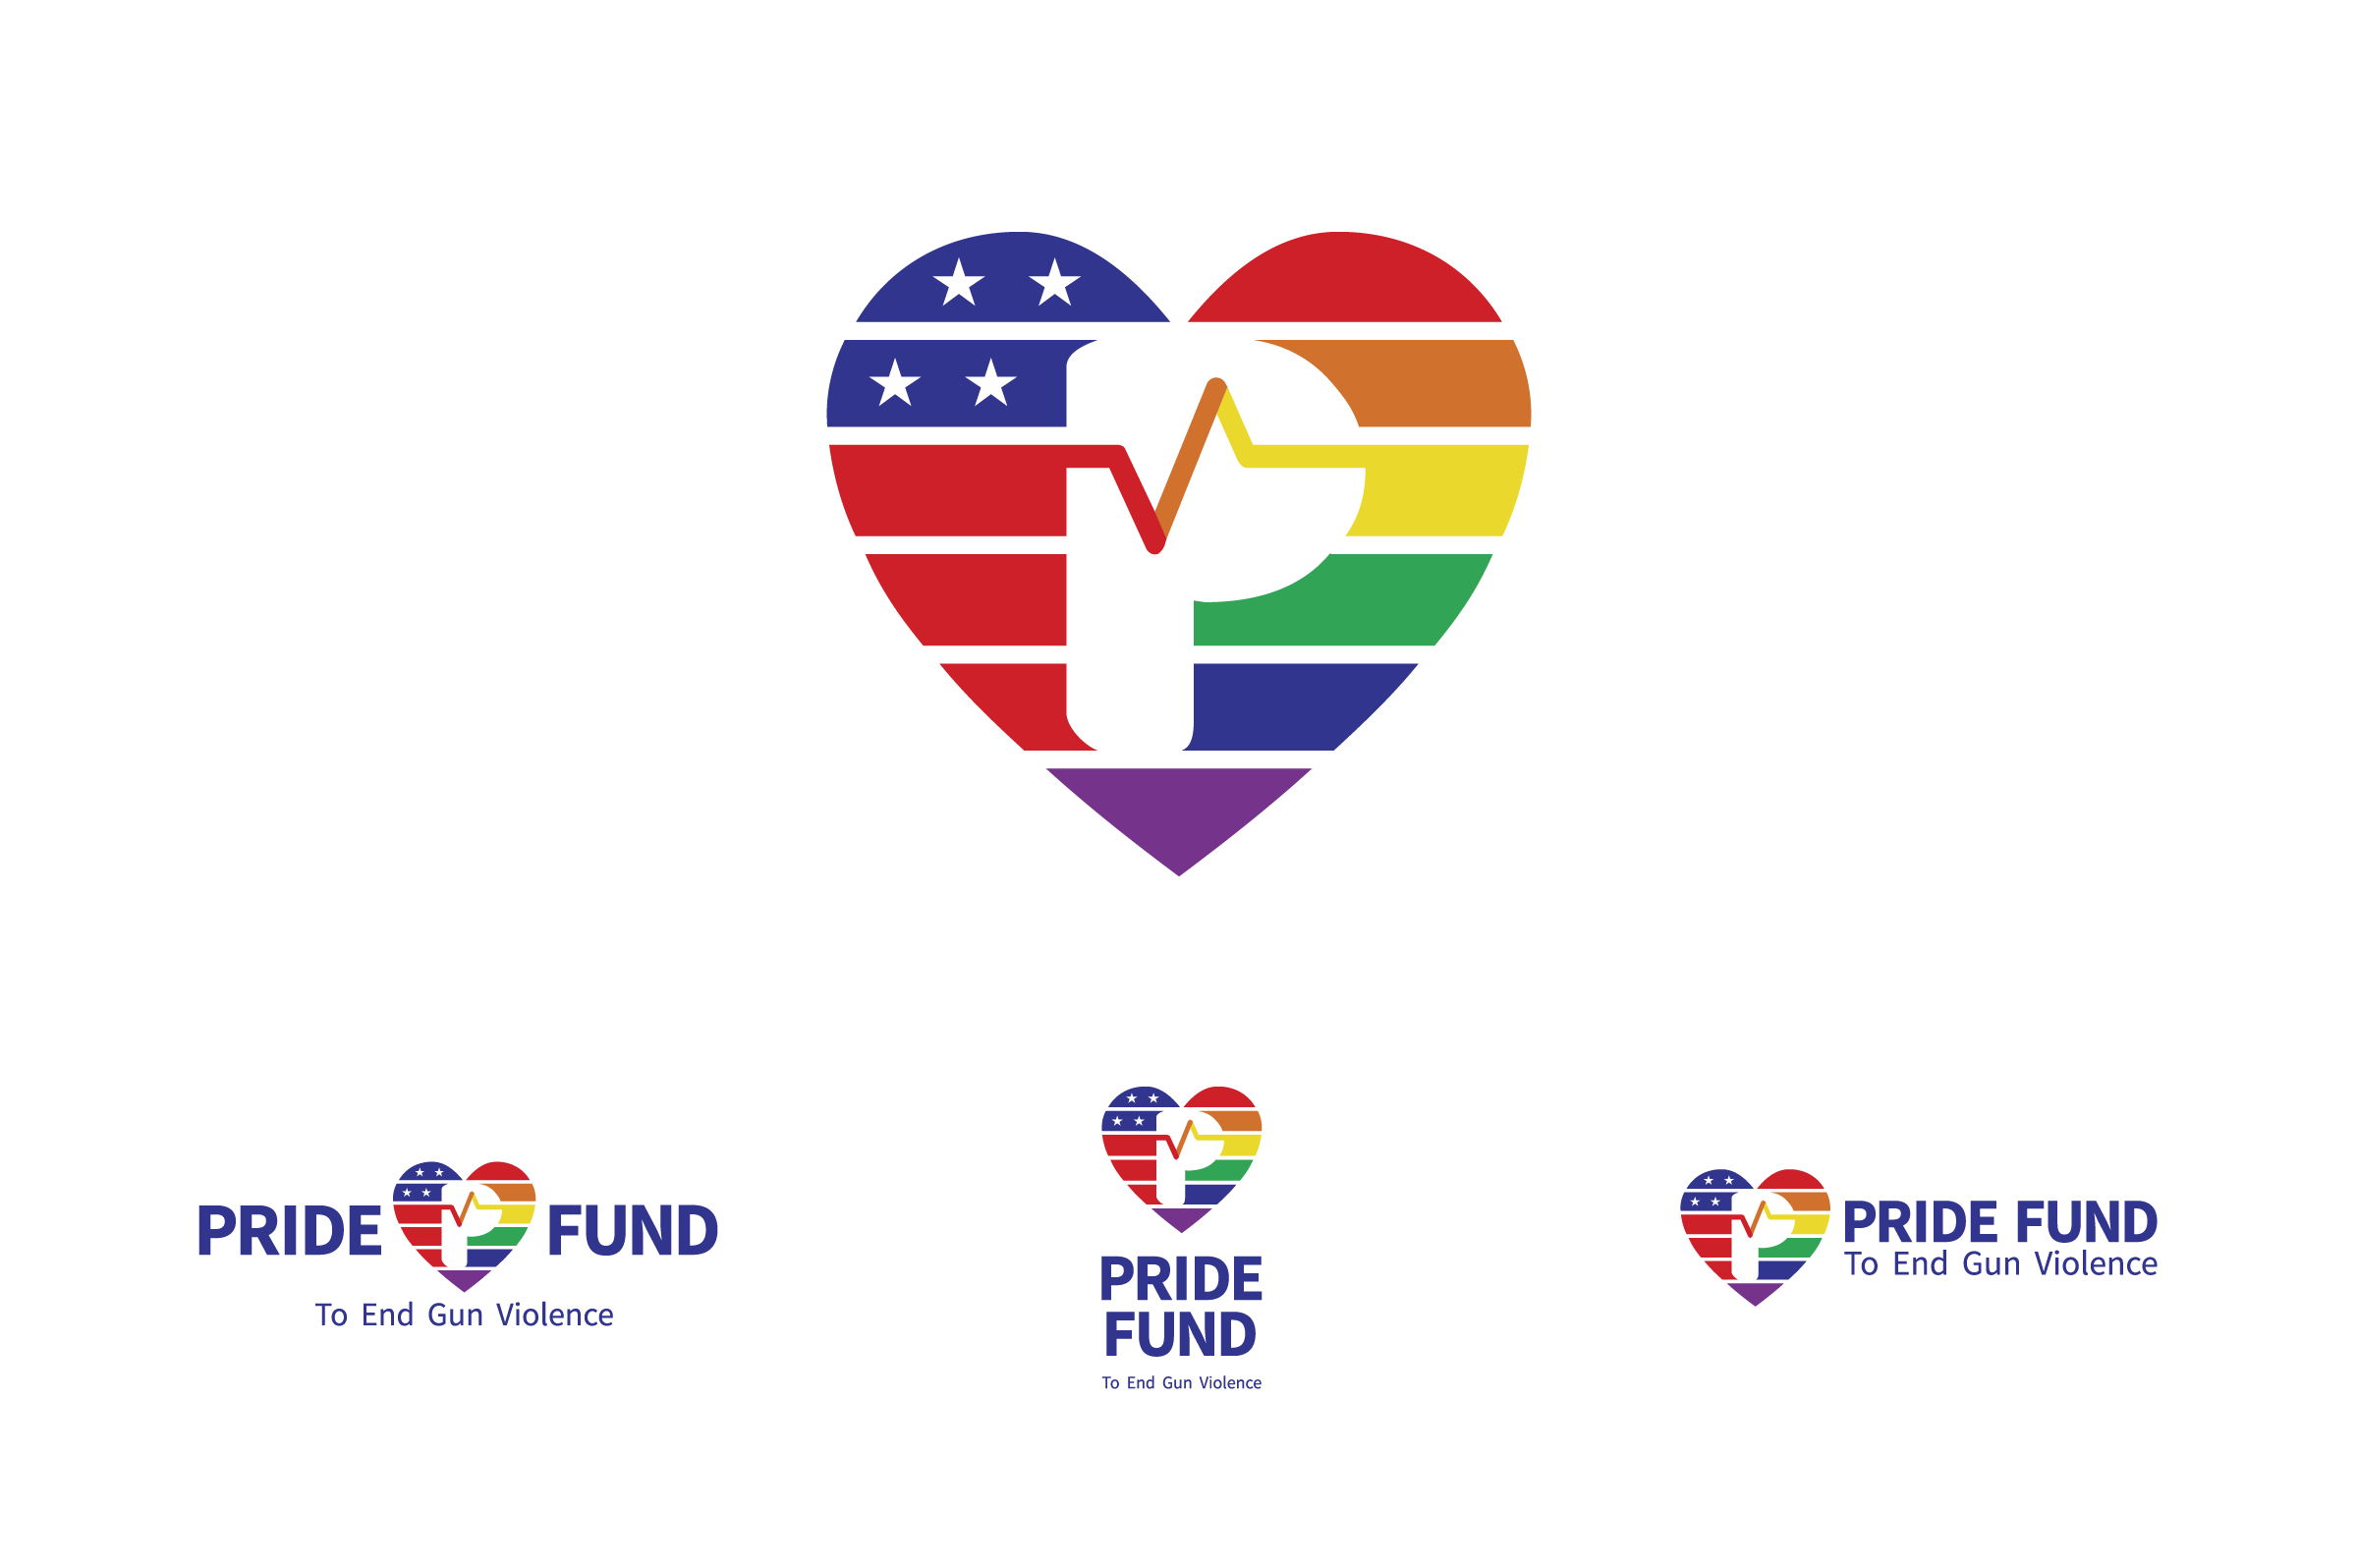 Variations of the pride fund logo on a white background